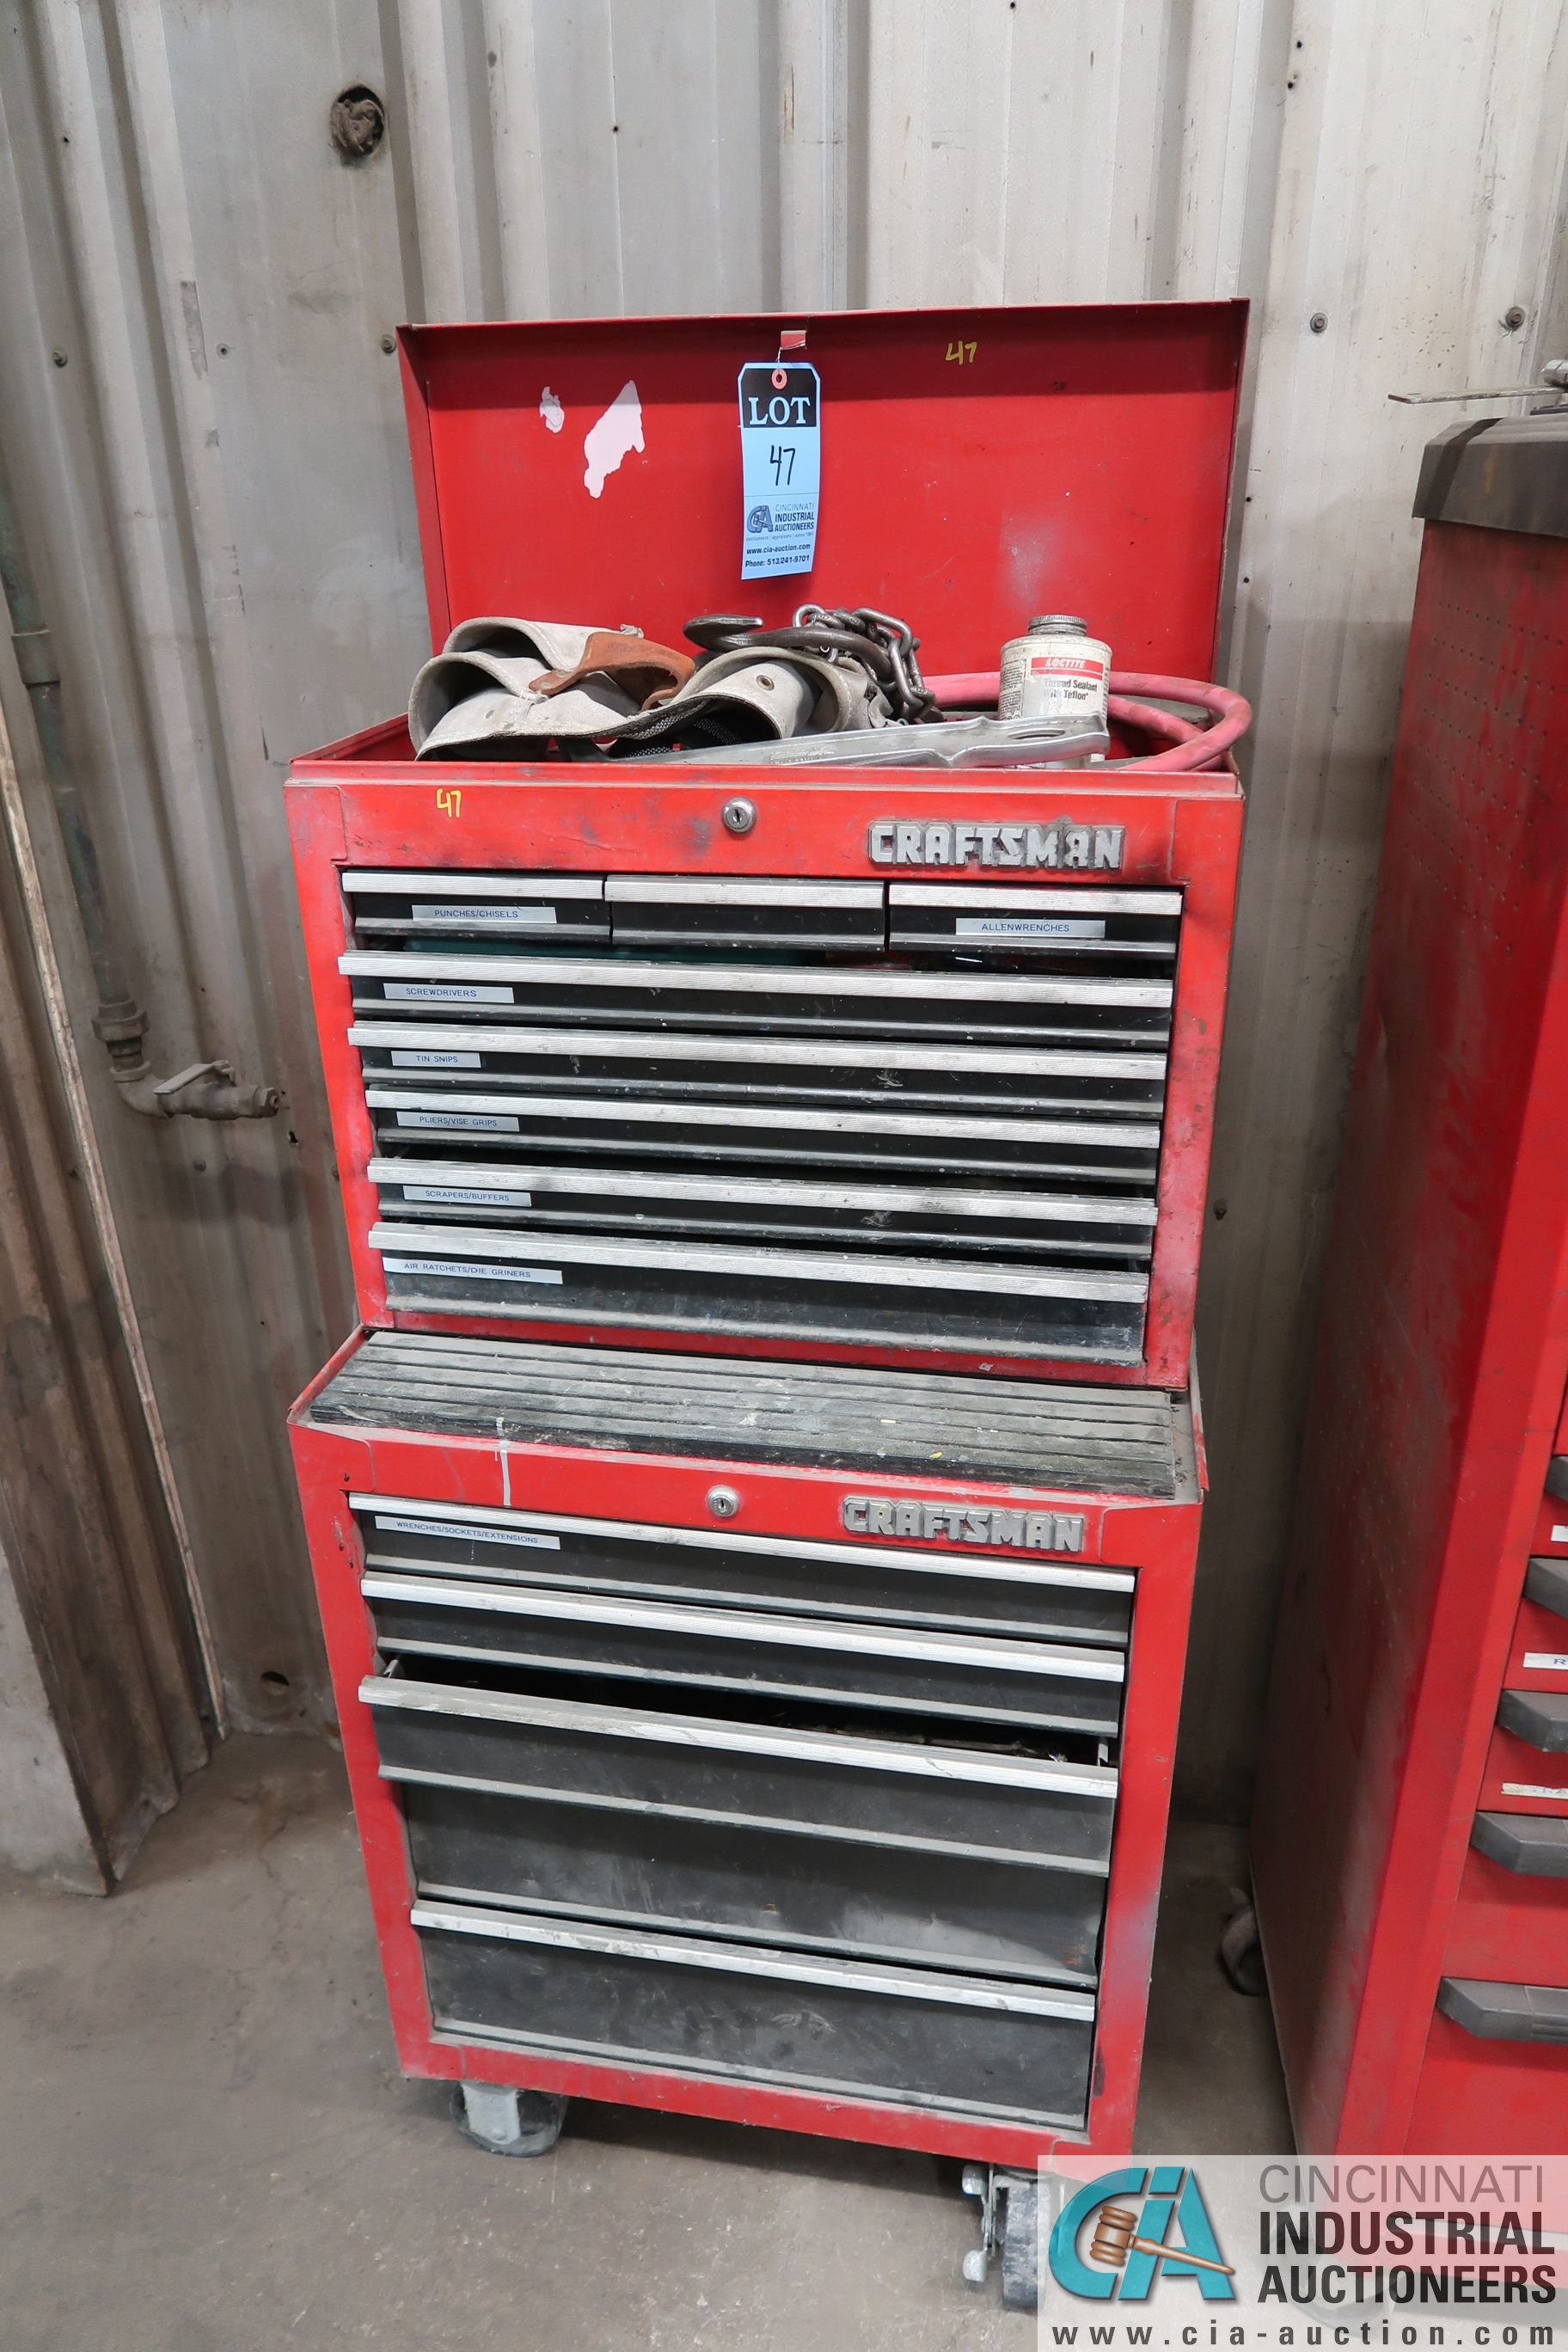 13-DRAWER CRAFTSMAN PORTABLE TOOLBOX WITH TOOLS